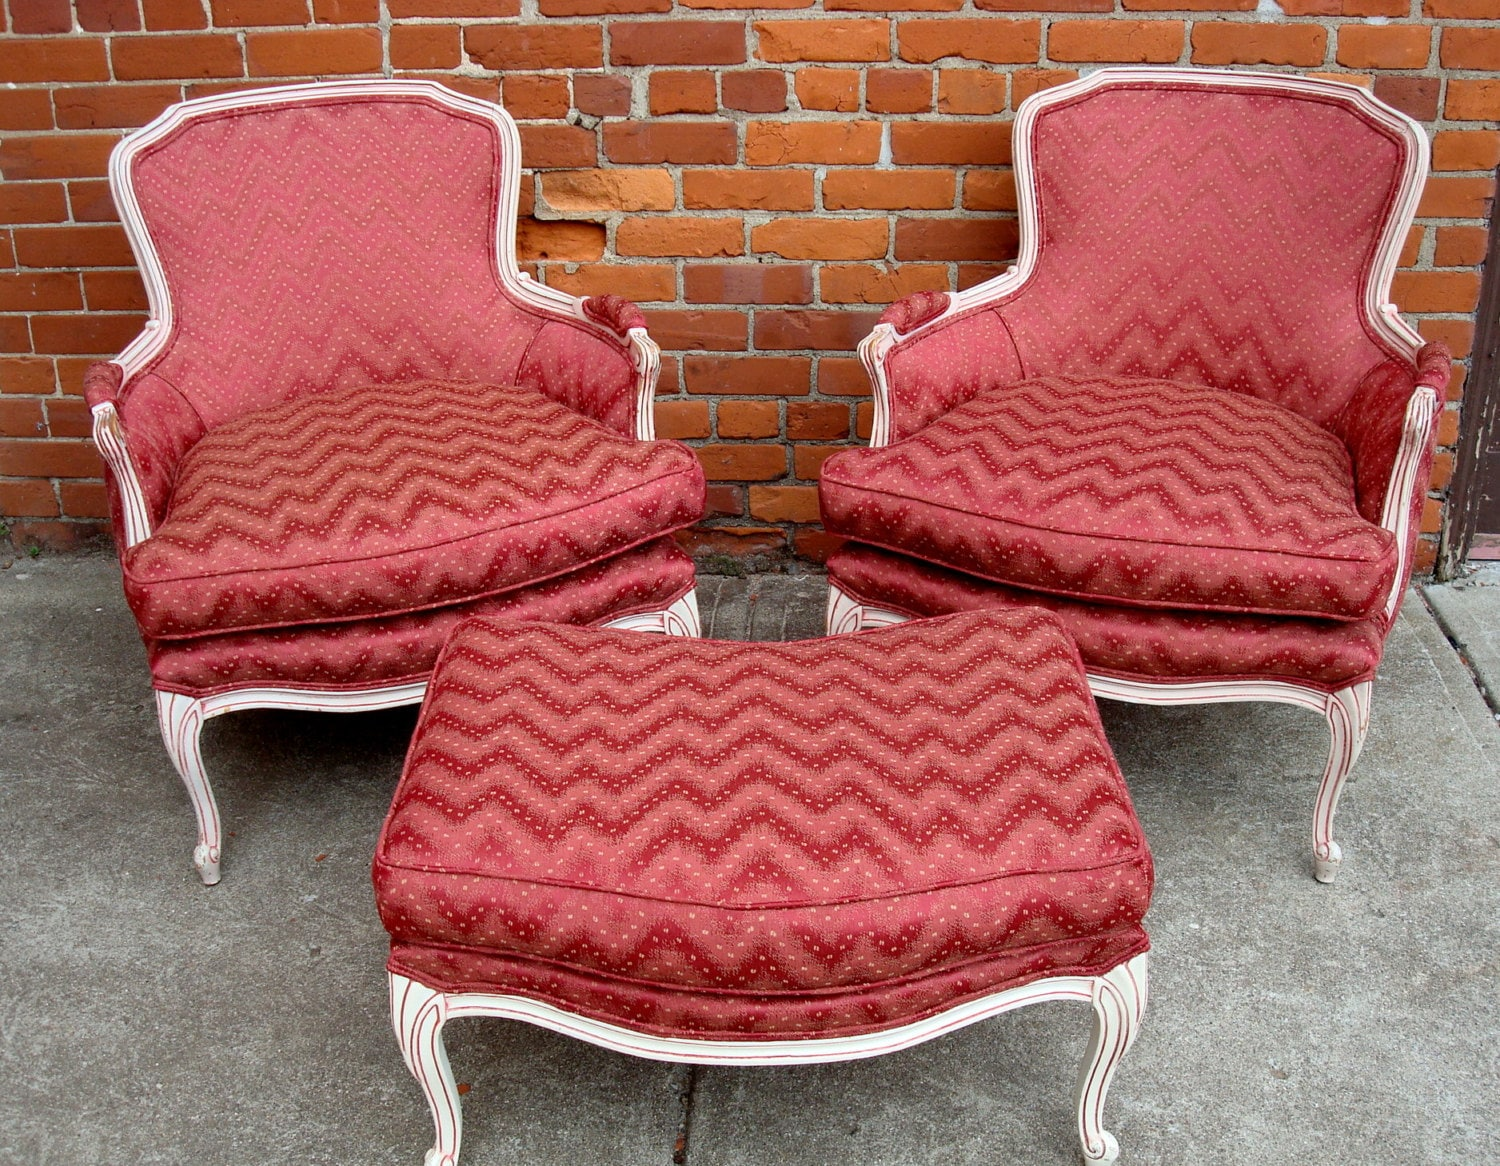 french bergere chair and ottoman best chairs glider recliner sold 1960 39s 70 reupholstered vintage chic bohemian